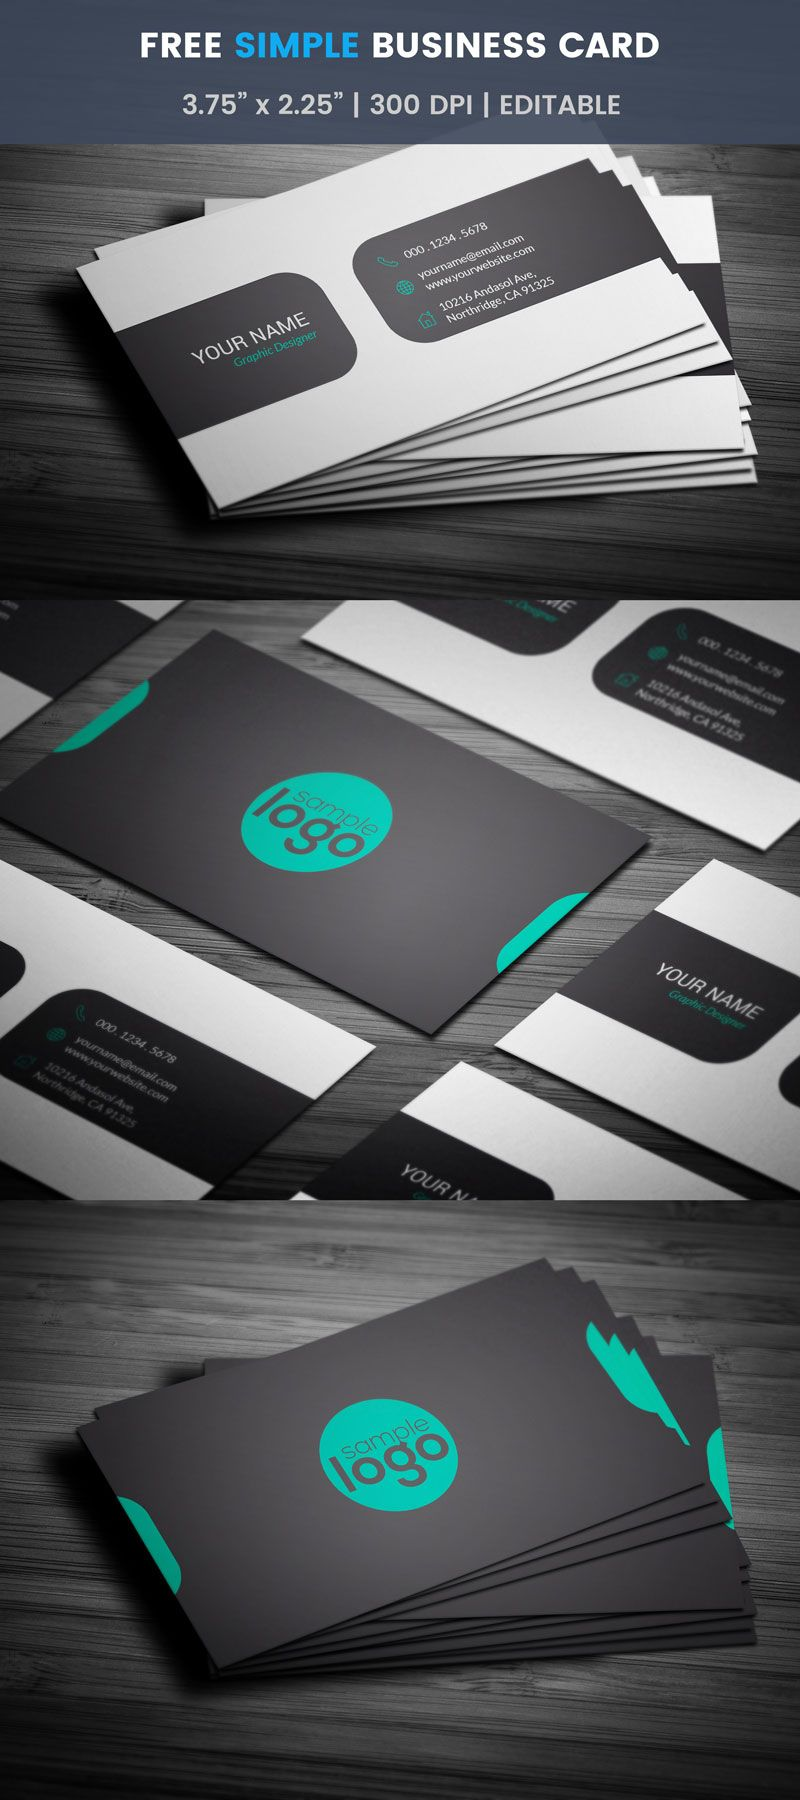 Free Simple Business Card Simple Business Cards Business Cards